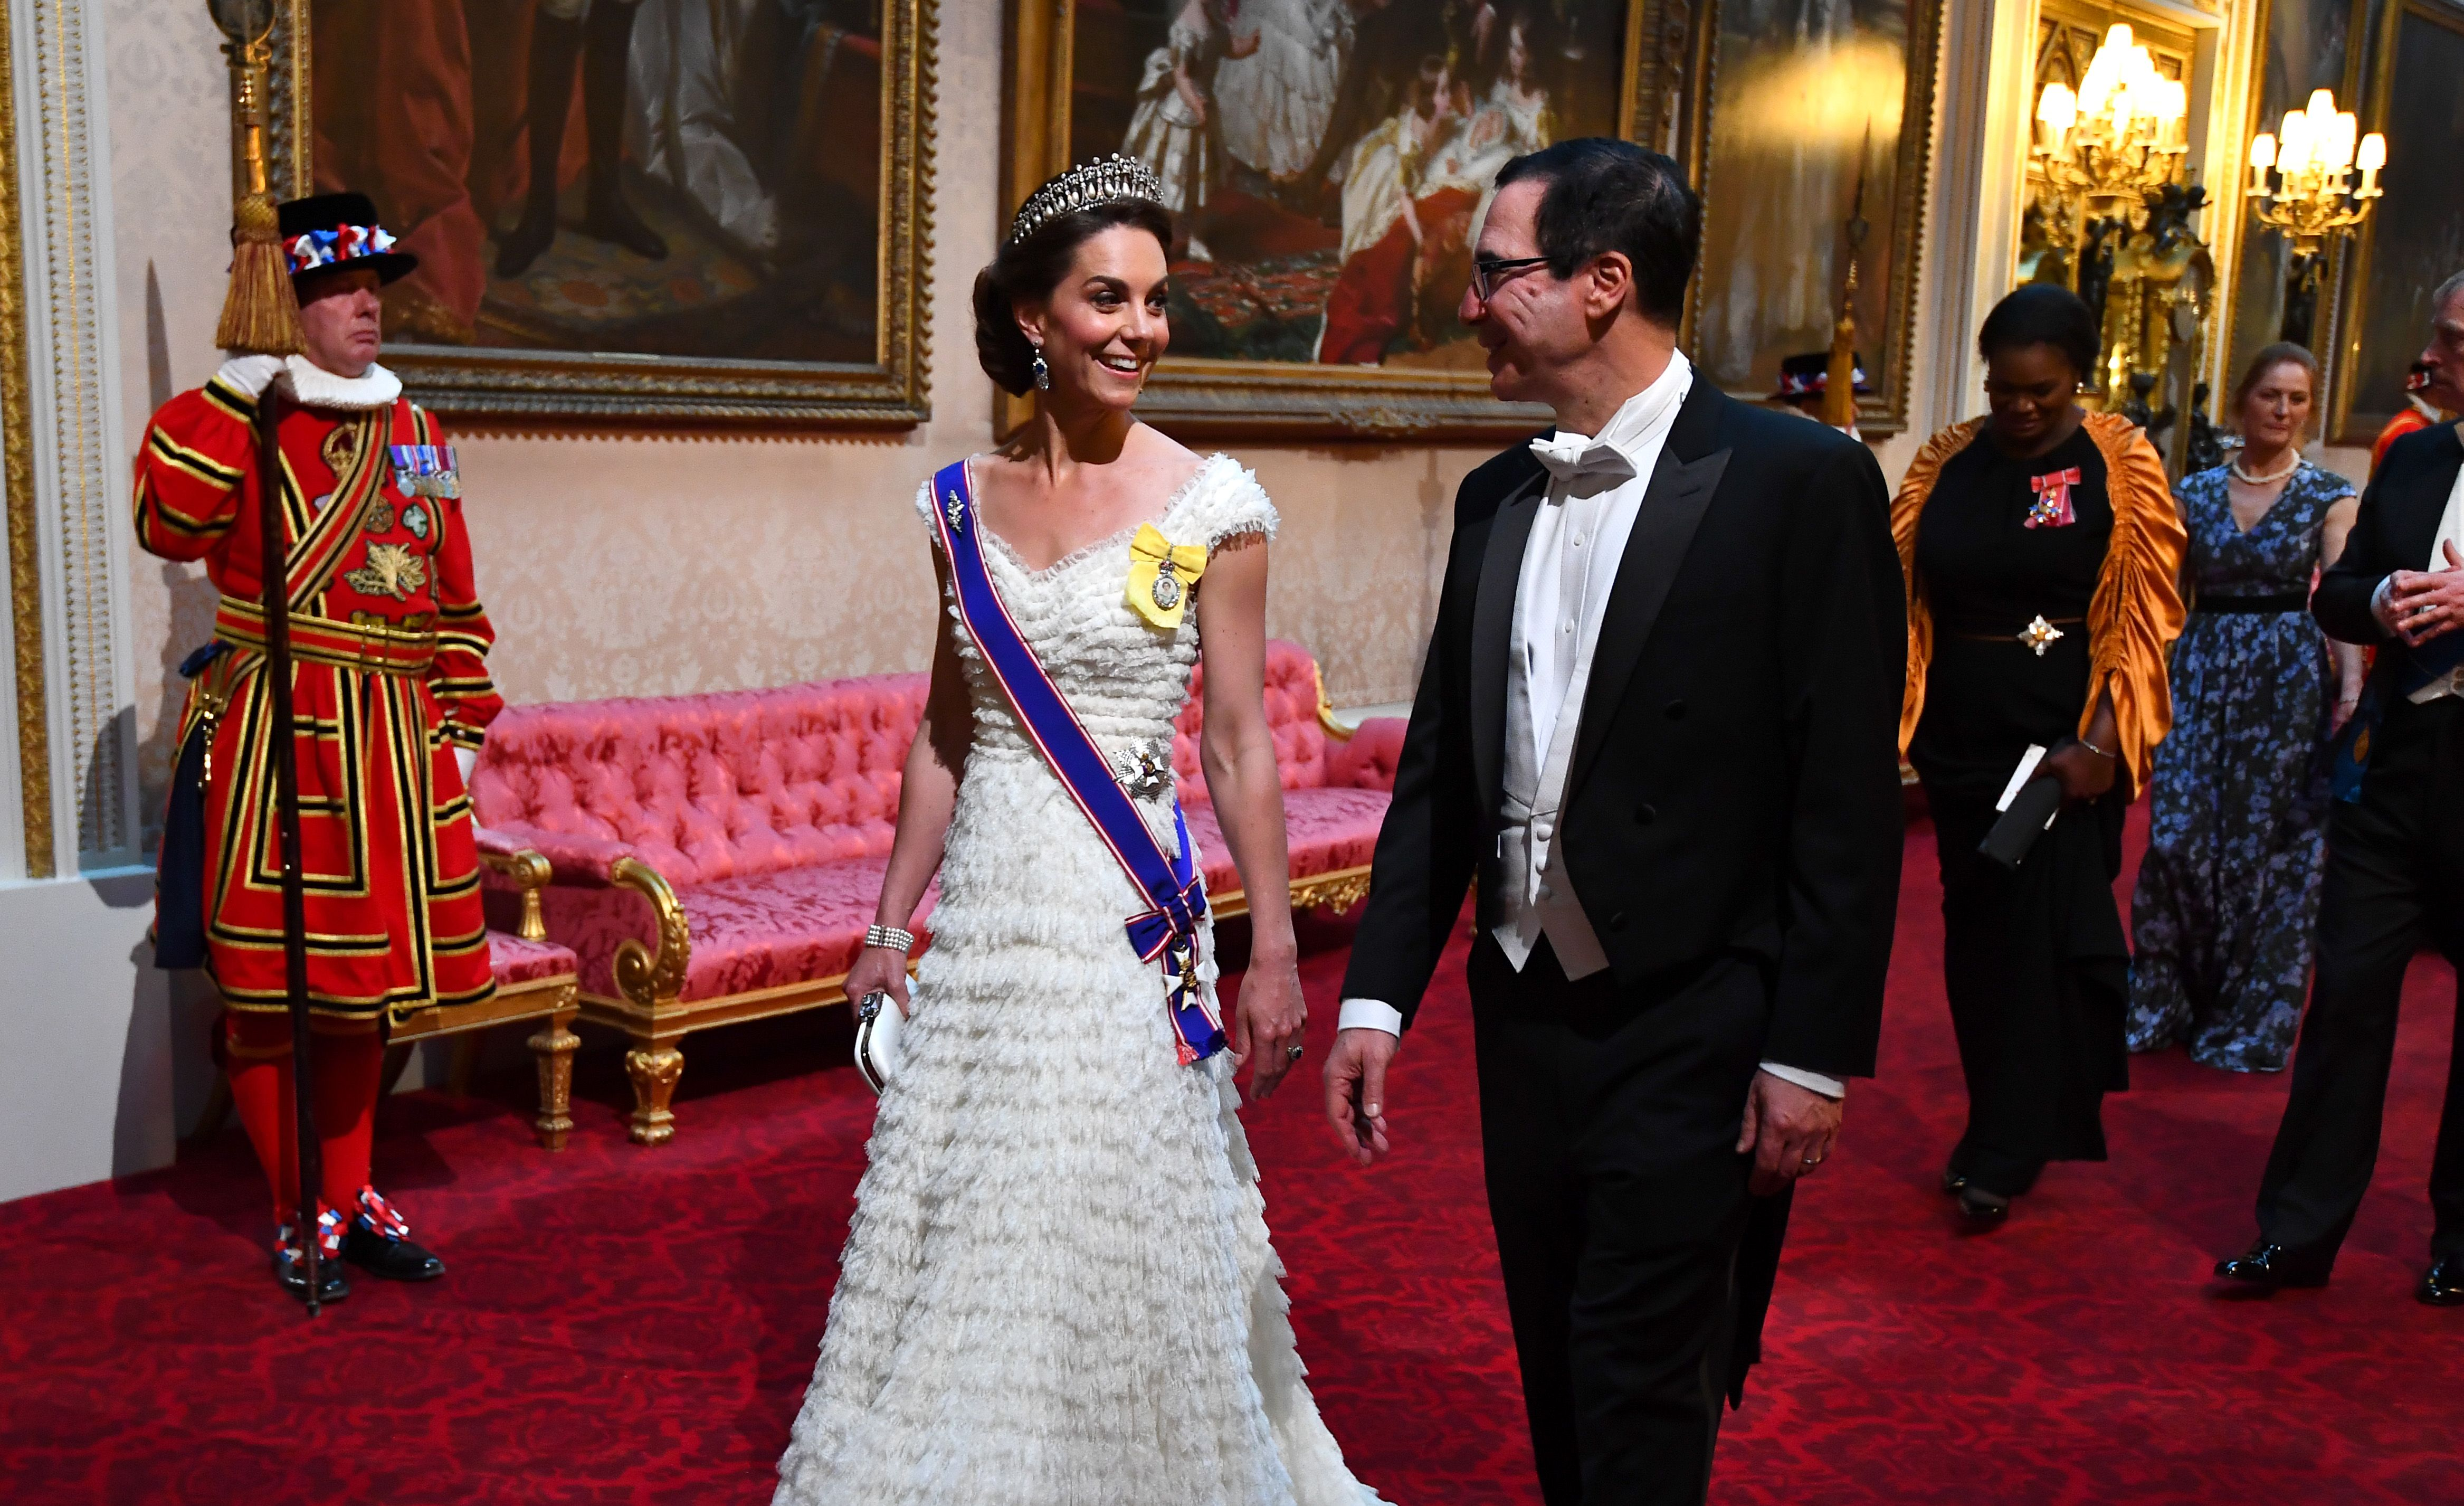 Mystery surrounding Kate Middleton at the state banquet solved